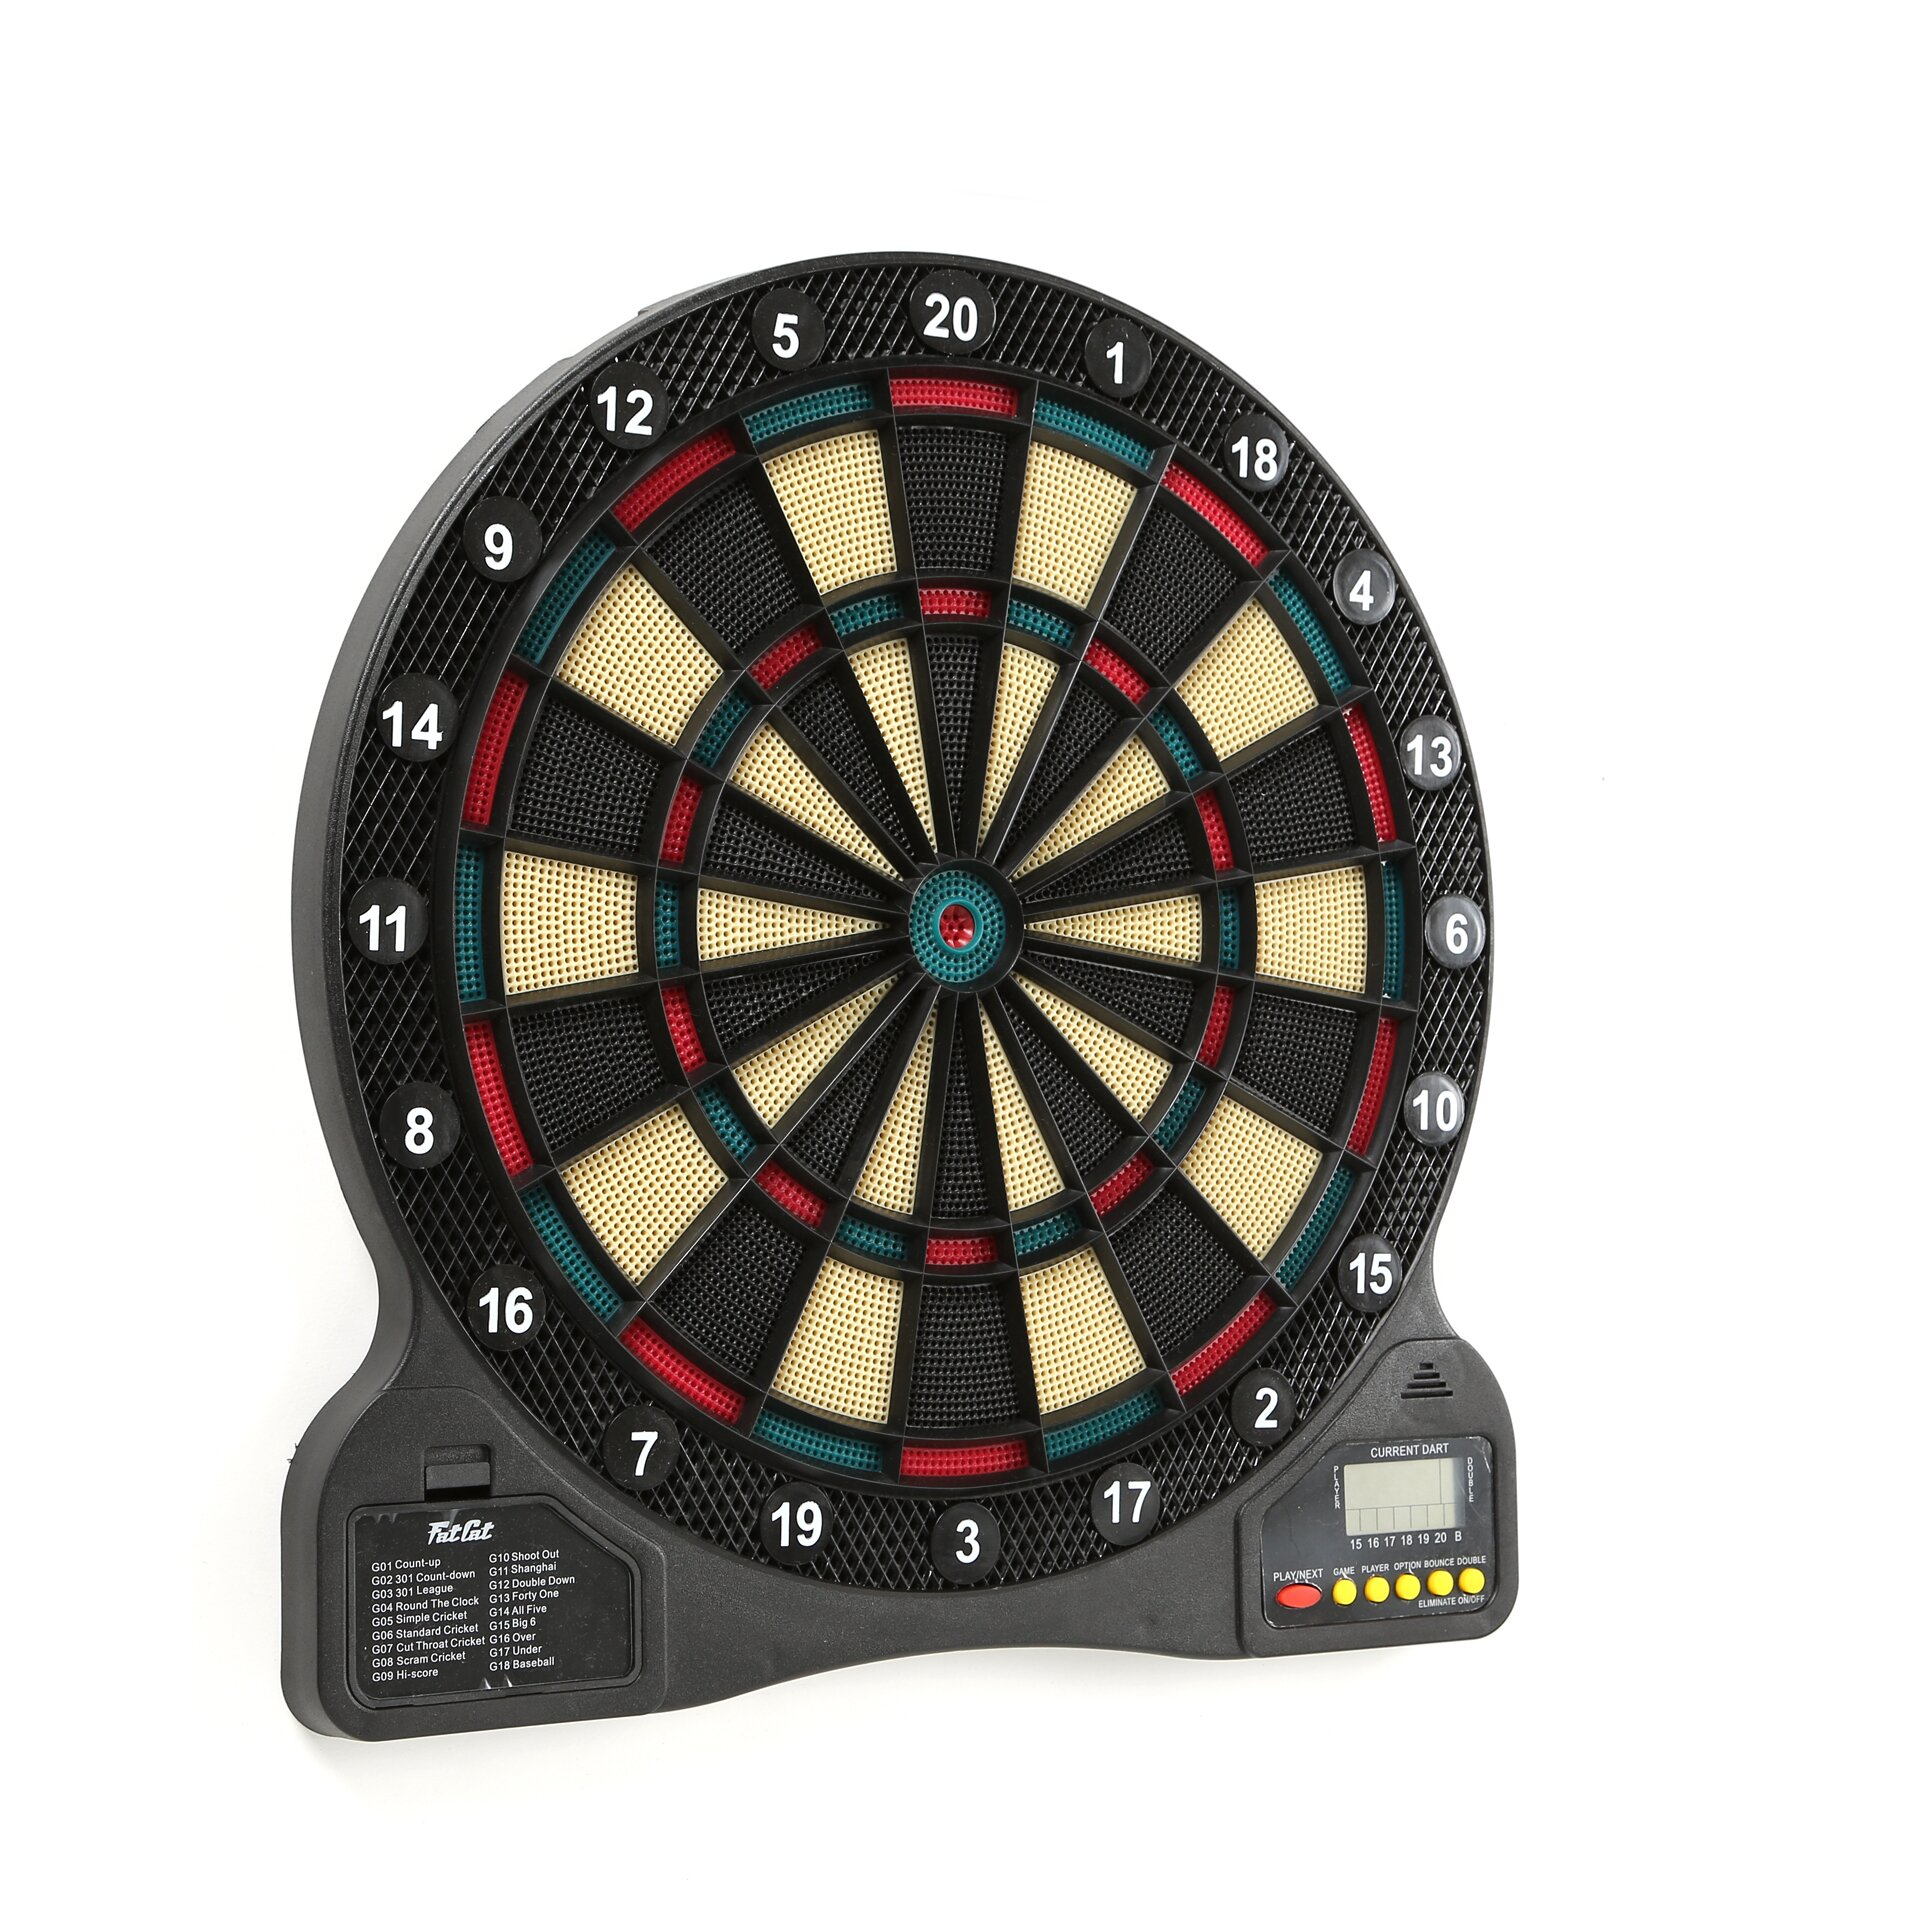 GLD Products Fat Cat 727 Electronic Dart Board & Reviews  Wayfair